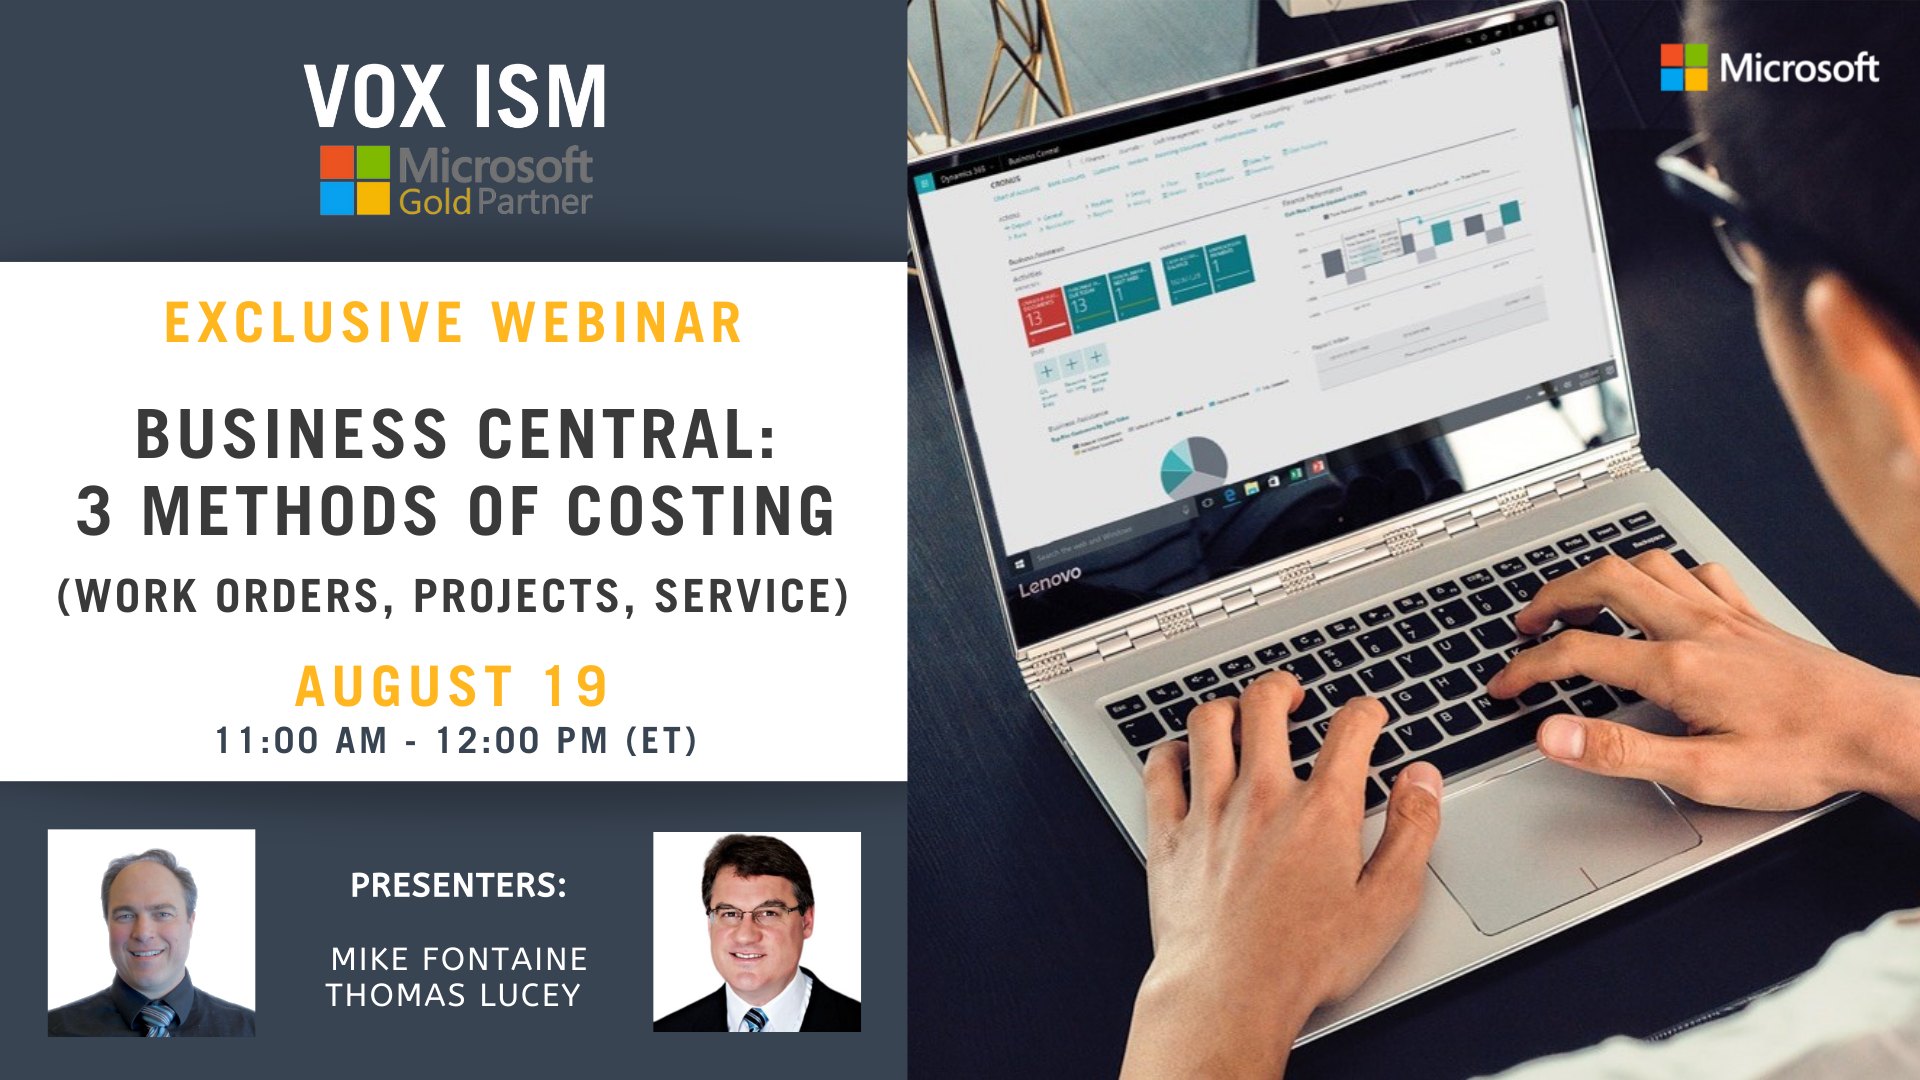 Business Central - 3 methods of costing (Work Orders, Projects, Service) - August 19 - Webinar